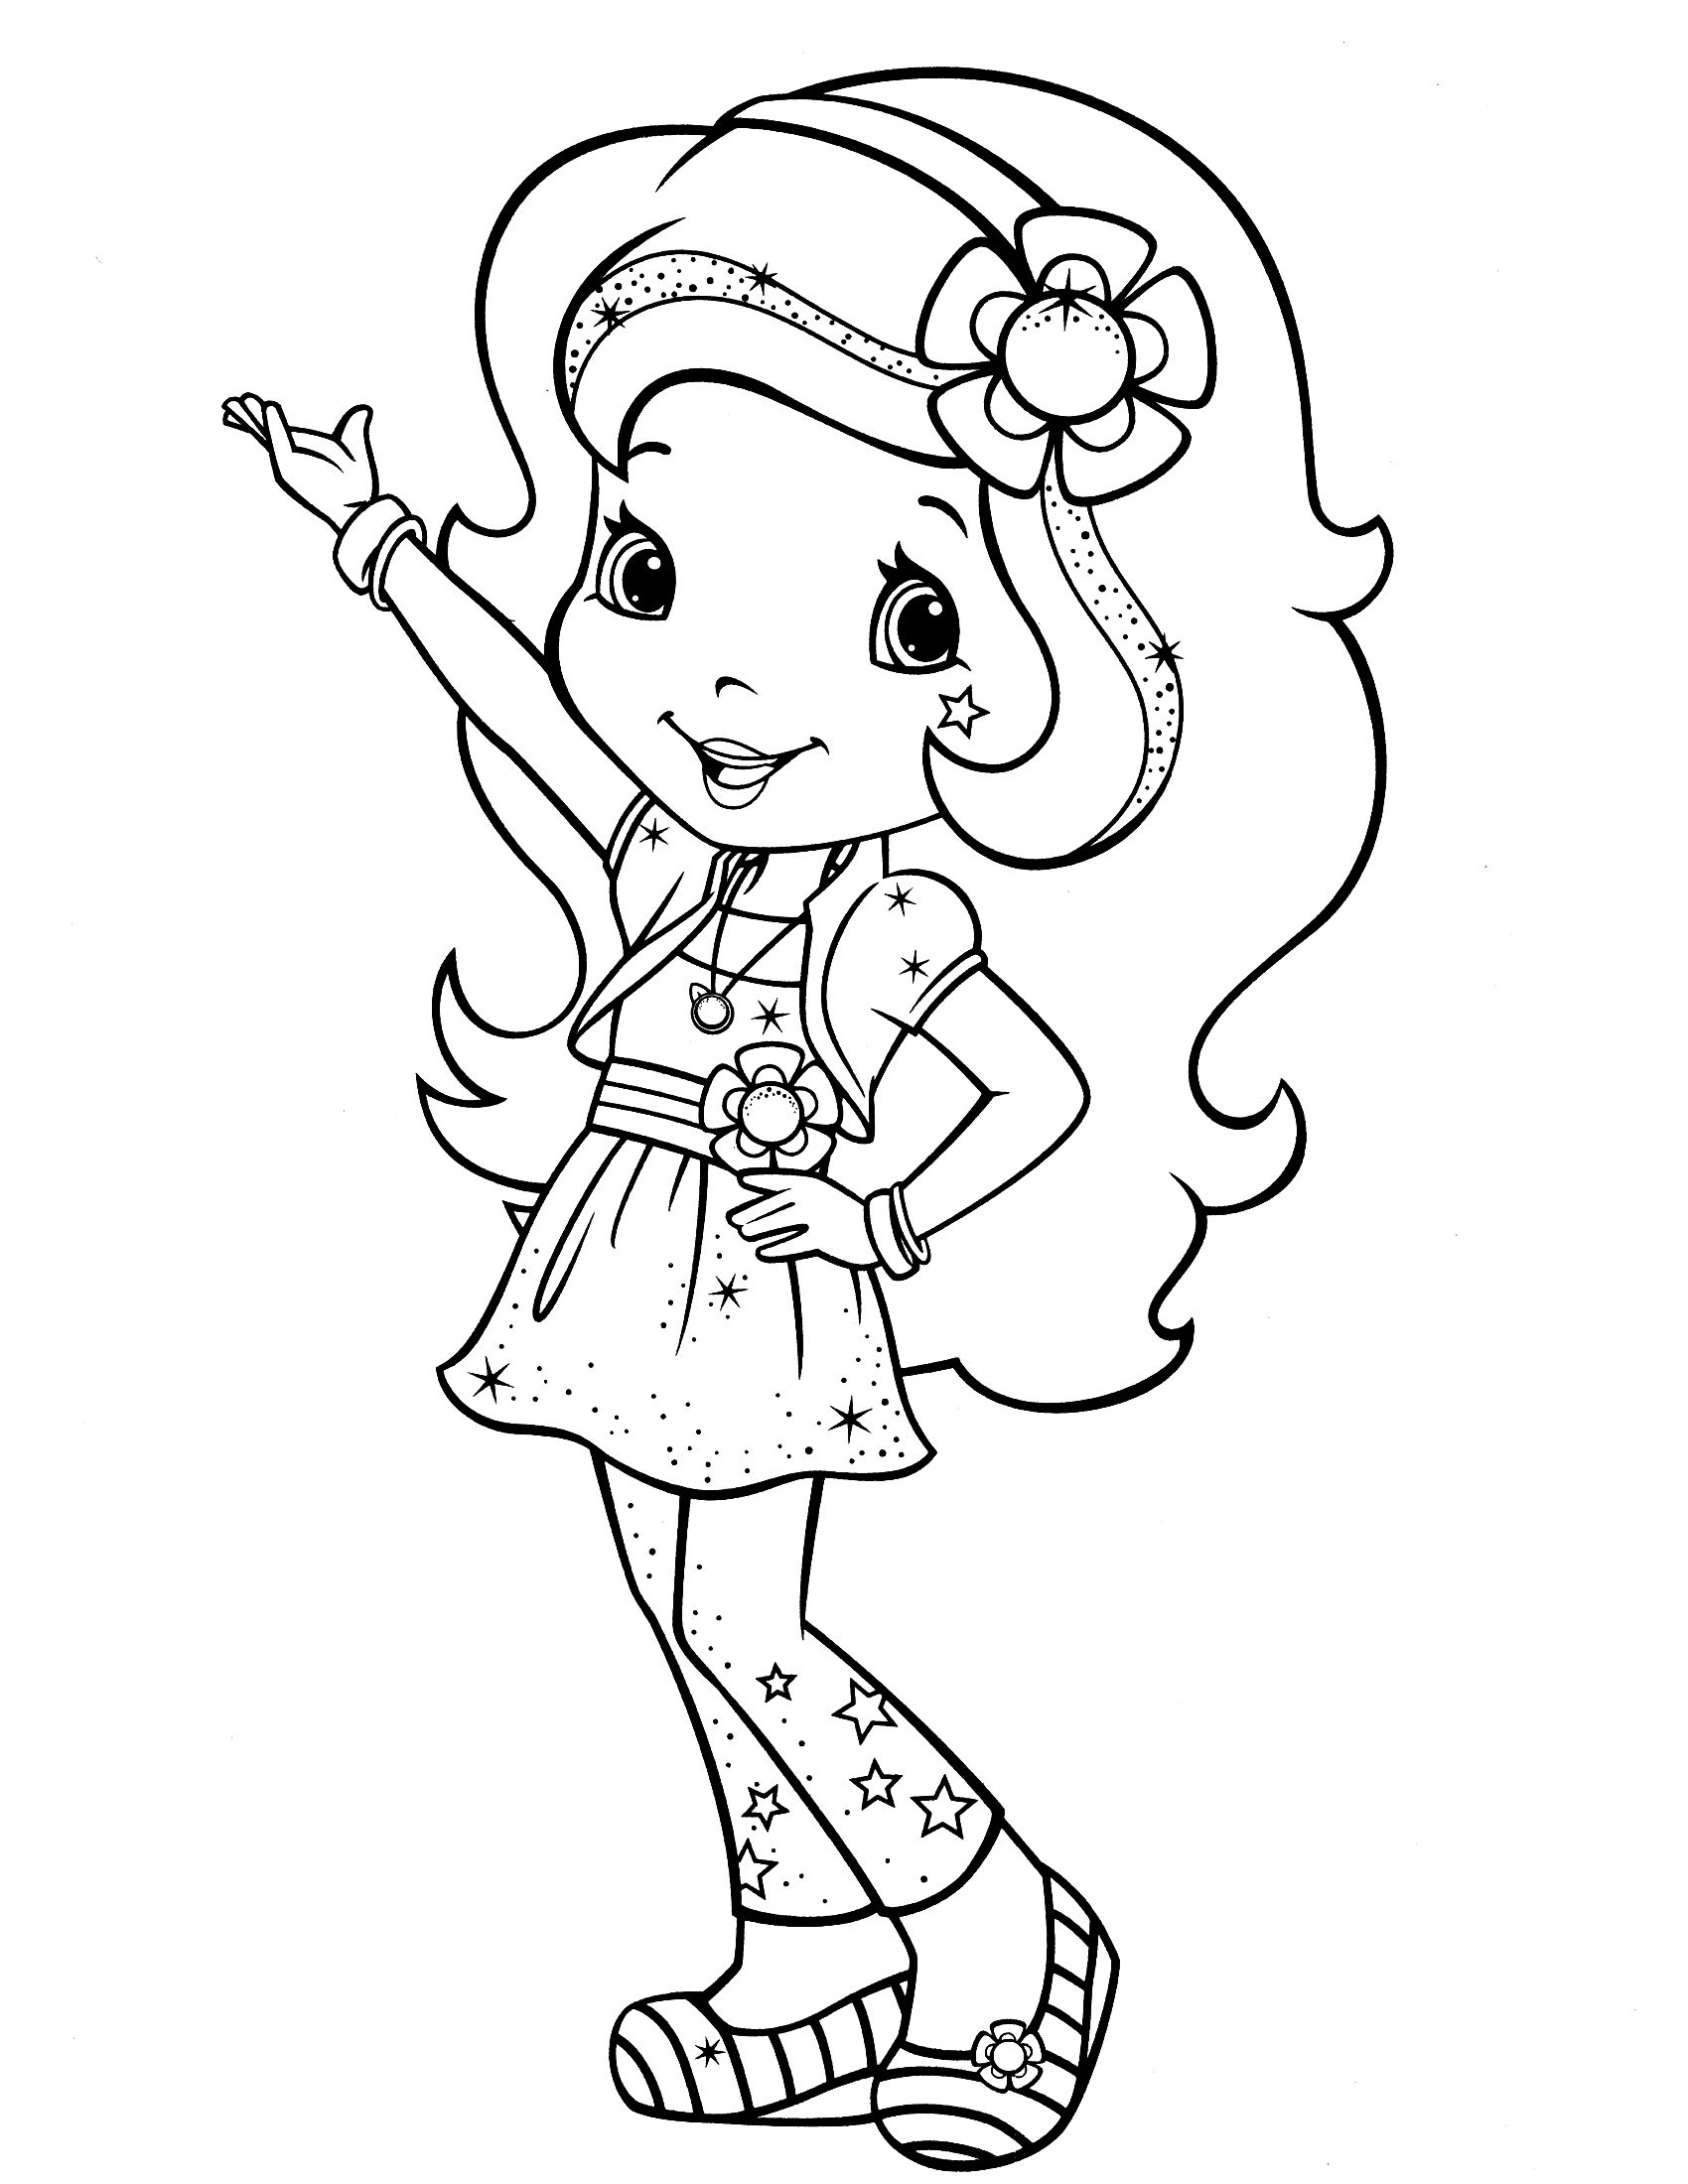 strawberry short cake coloring pages - download strawberry shortcake coloring pages patrones